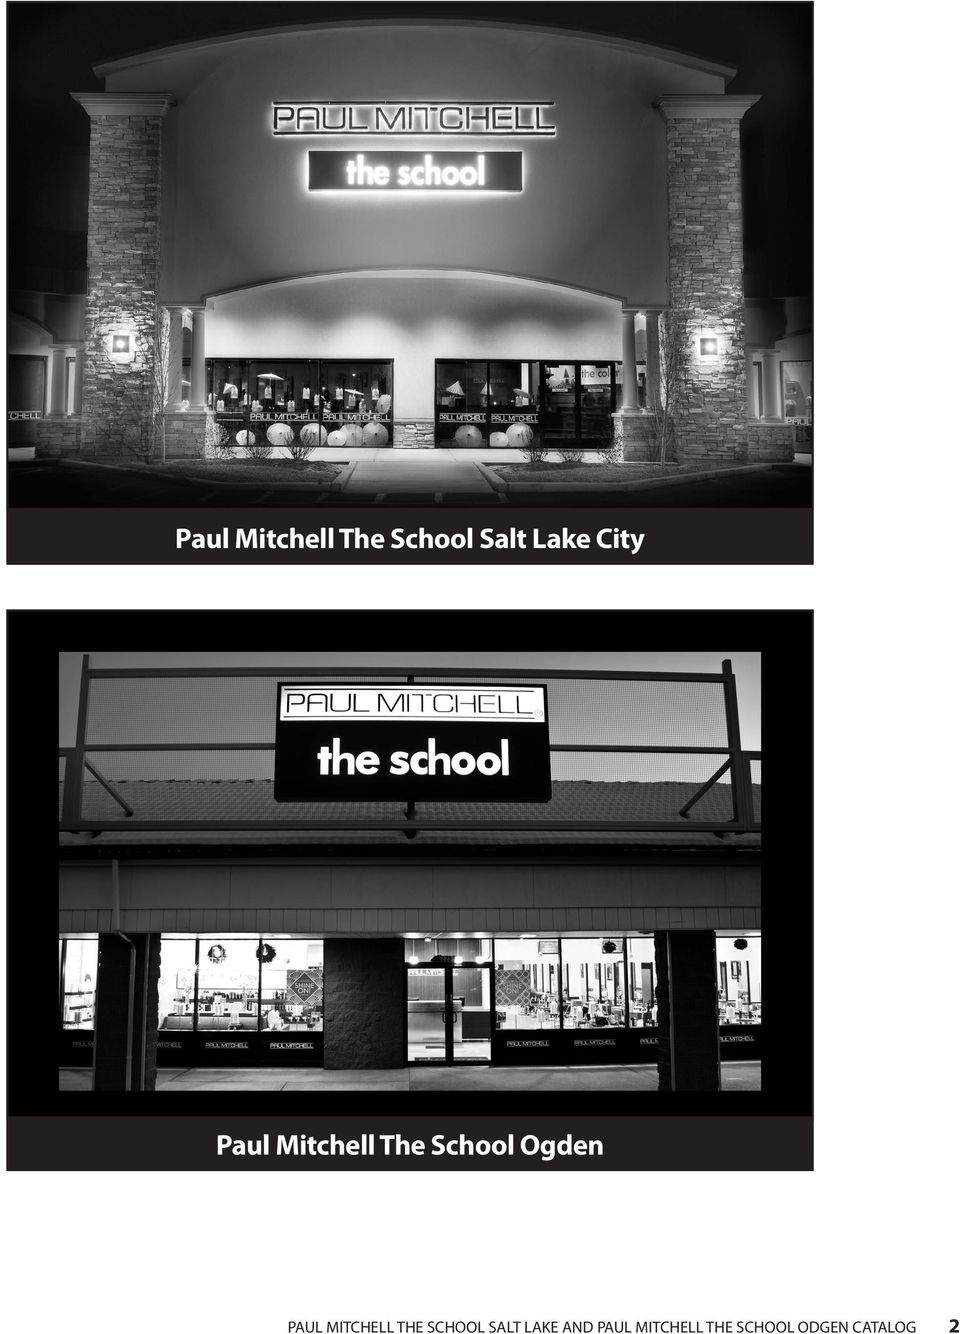 PAUL MITCHELL THE SCHOOL SALT LAKE